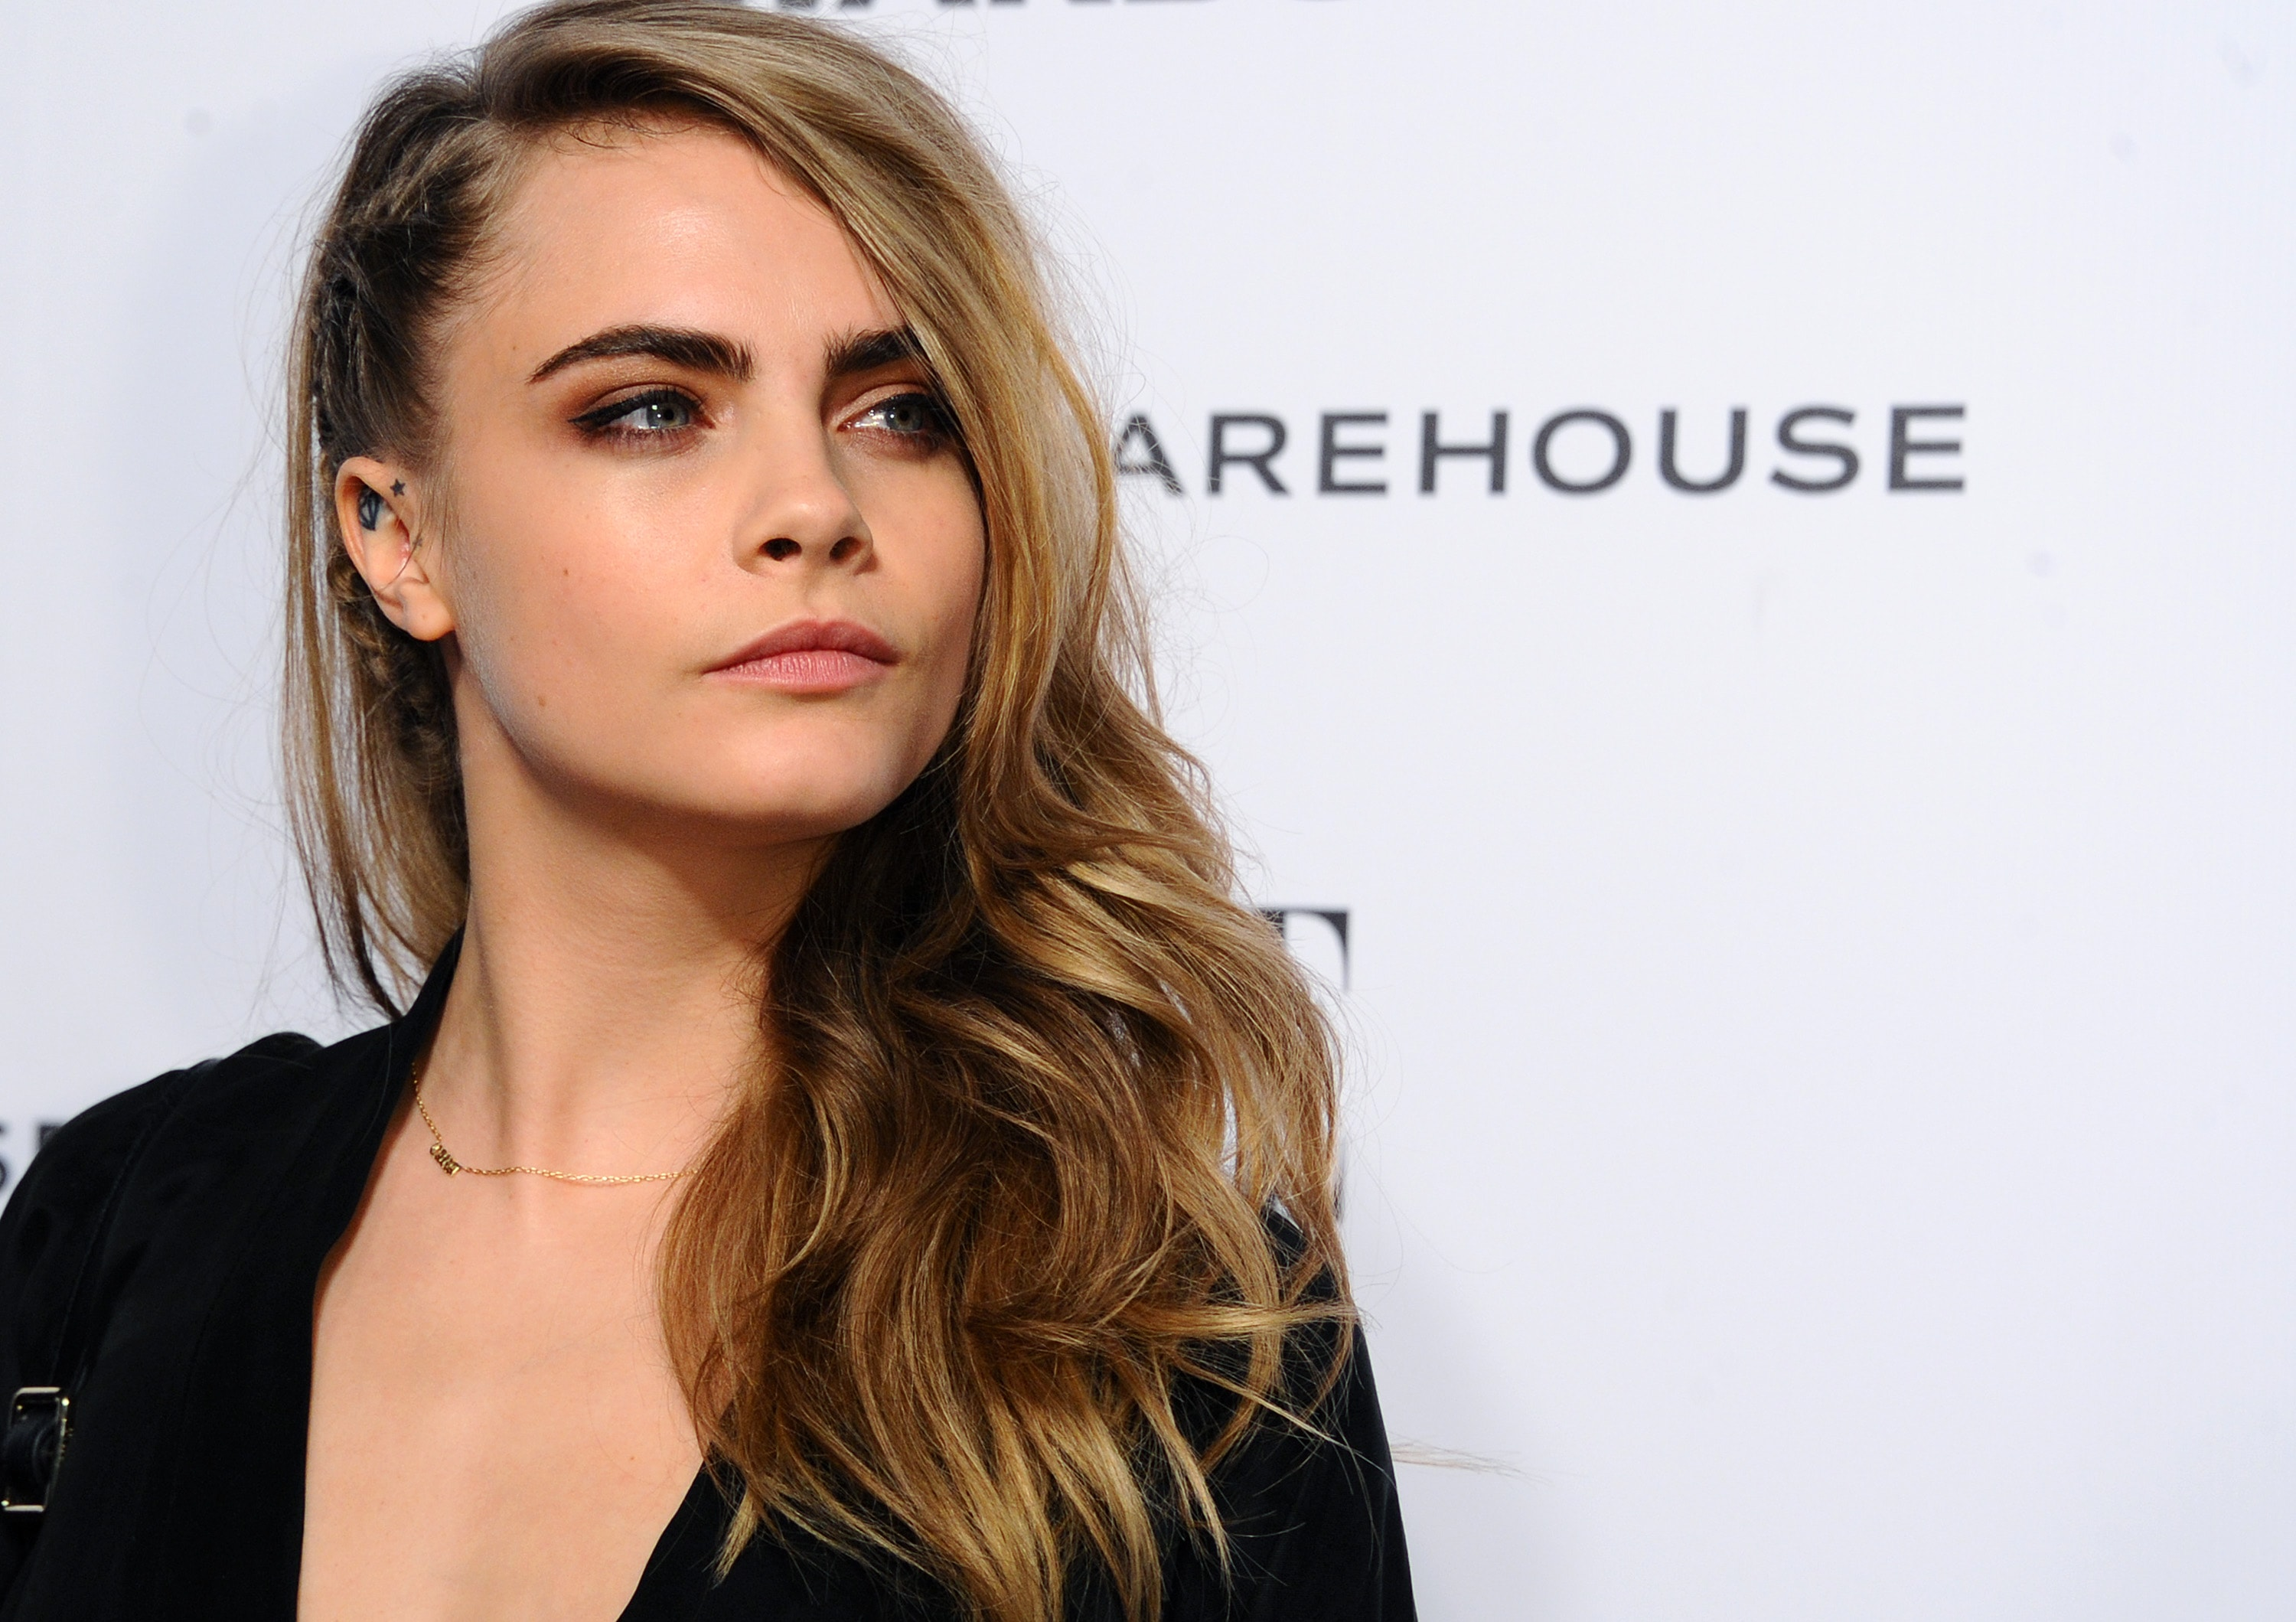 Cara Delevingne HQ wallpapers